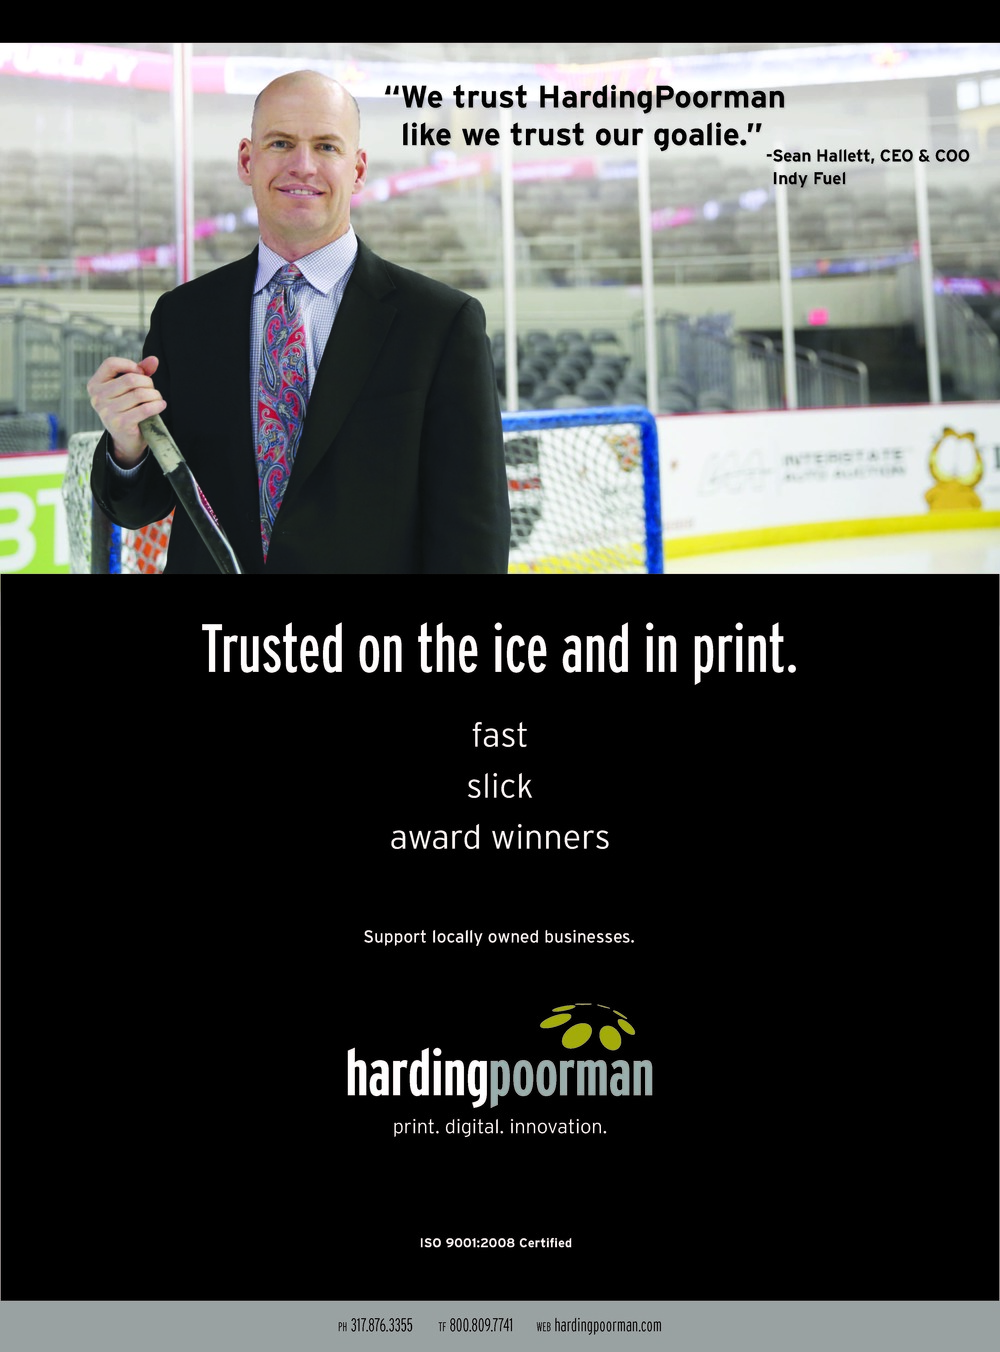 Indianapolis Business Journal.Indy Fuel. Trust Ad.